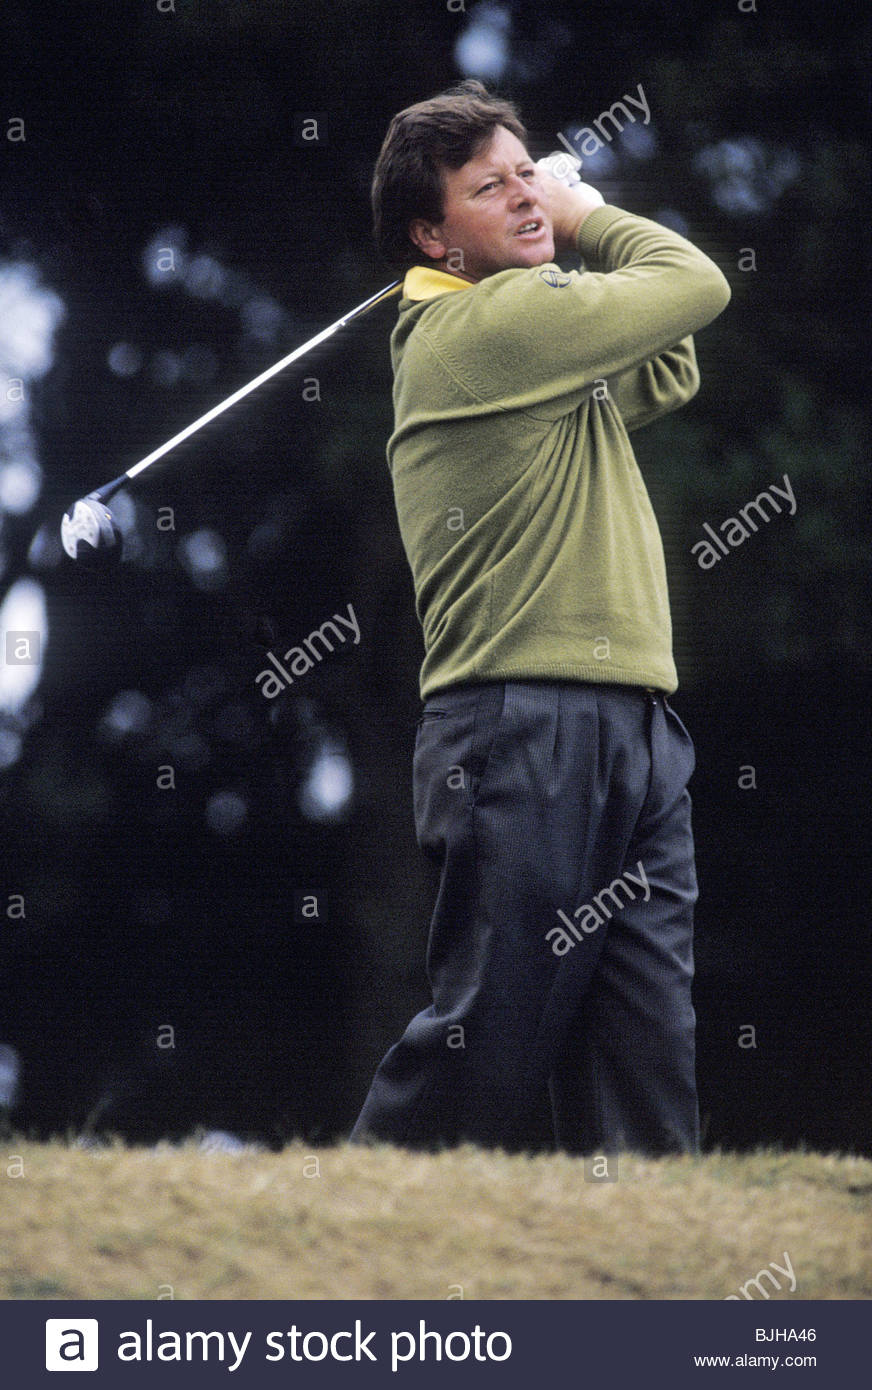 12/07/92 BELL'S SCOTTISH OPEN CHAMPIONSHIP GLENEAGLES - PERTHSHIRE Golfer Ian Woosnam in action - Stock Image